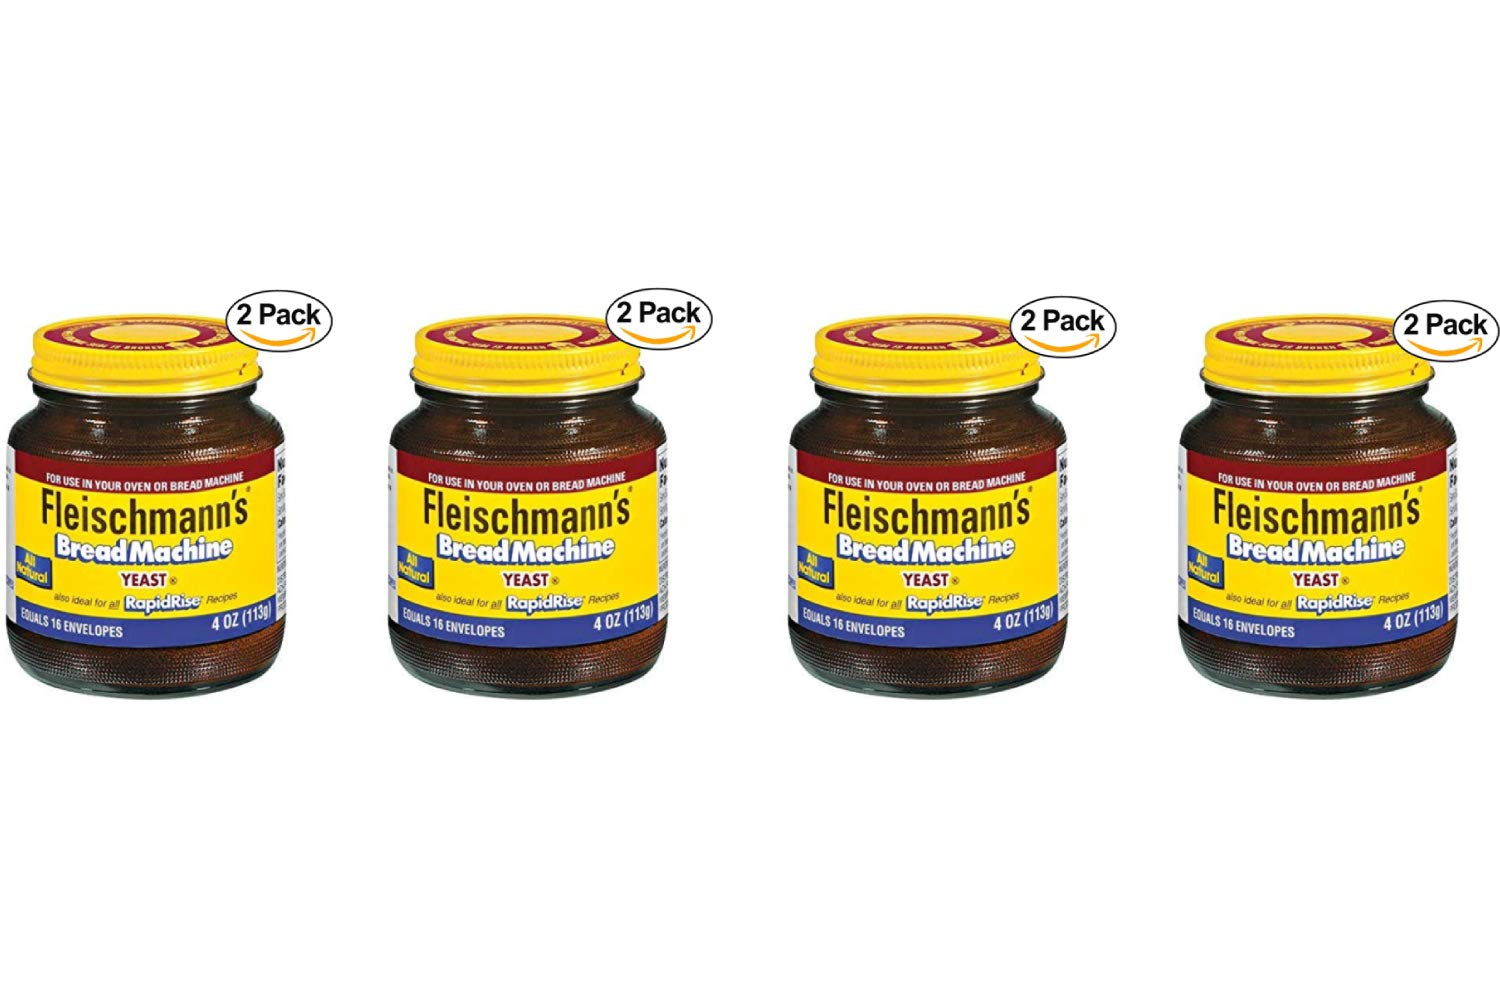 Fleischmann's Bread Machine Yeast, Also Ideal for All Rapid Rise Recipes, Equals 16 Envelopes, 113 Grams Jar (Pack of 2) (4 Pack)